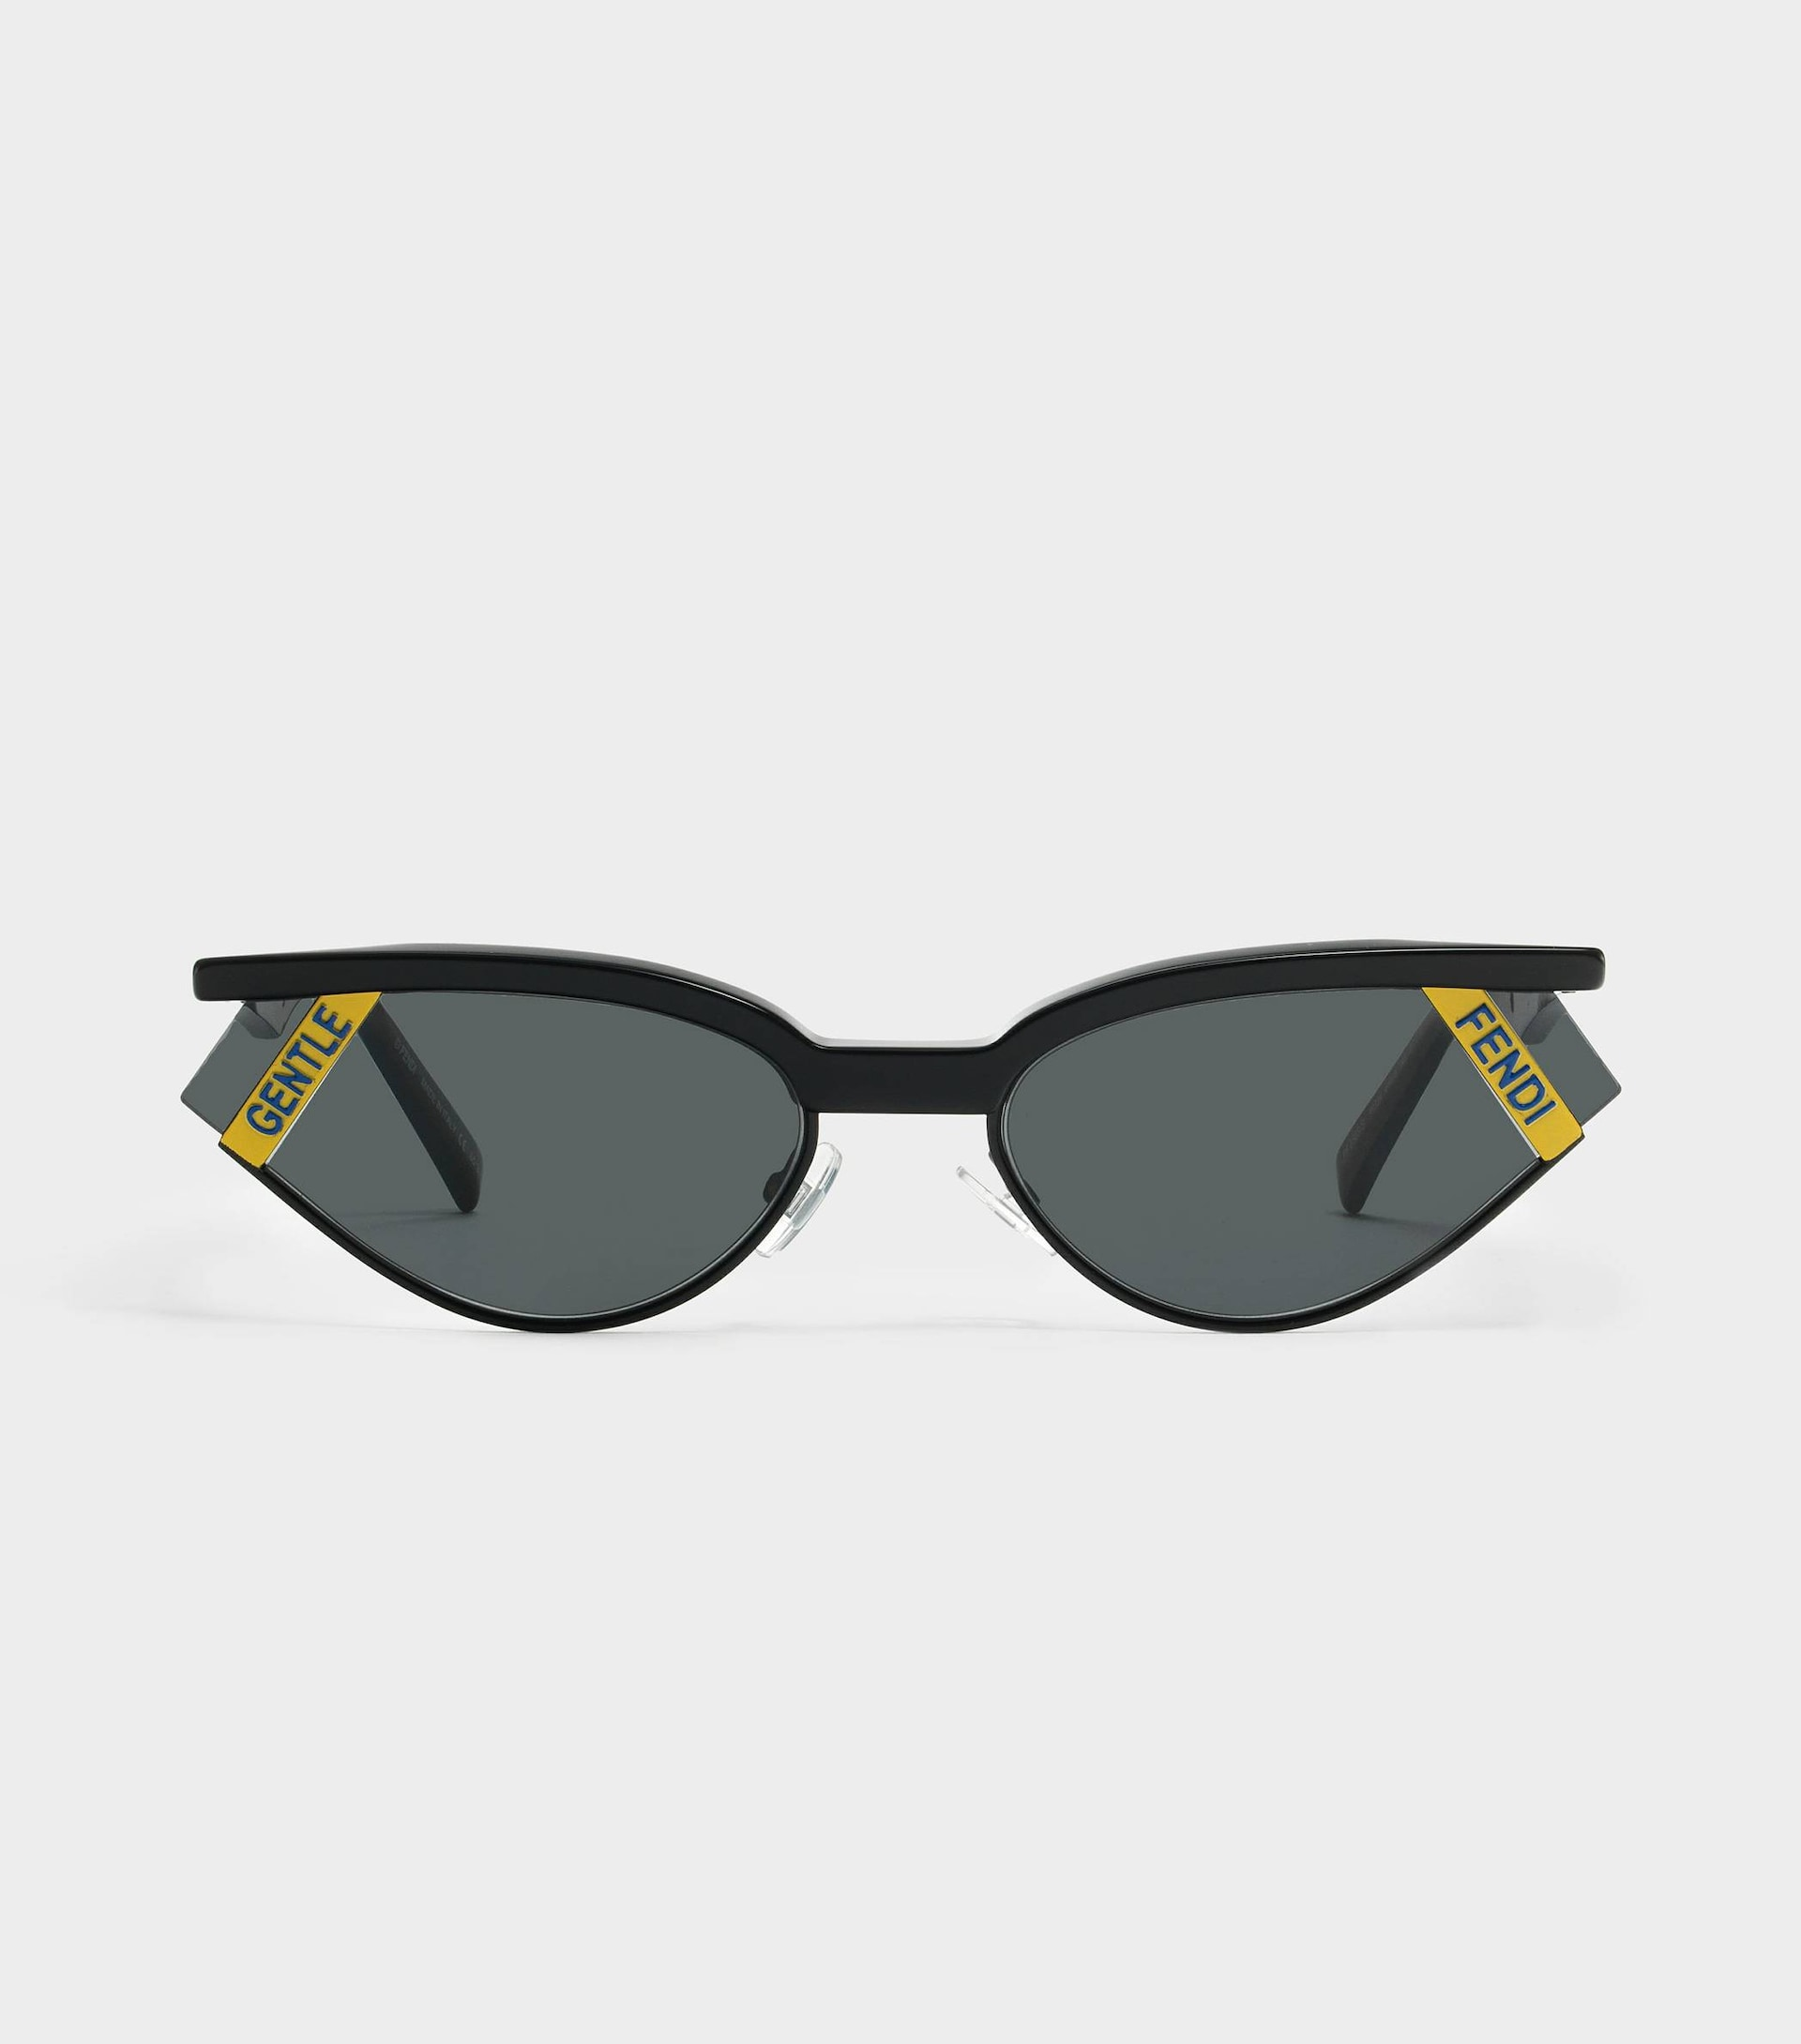 GENTLE MONSTER - GENTLE FENDI No.1 BLACK